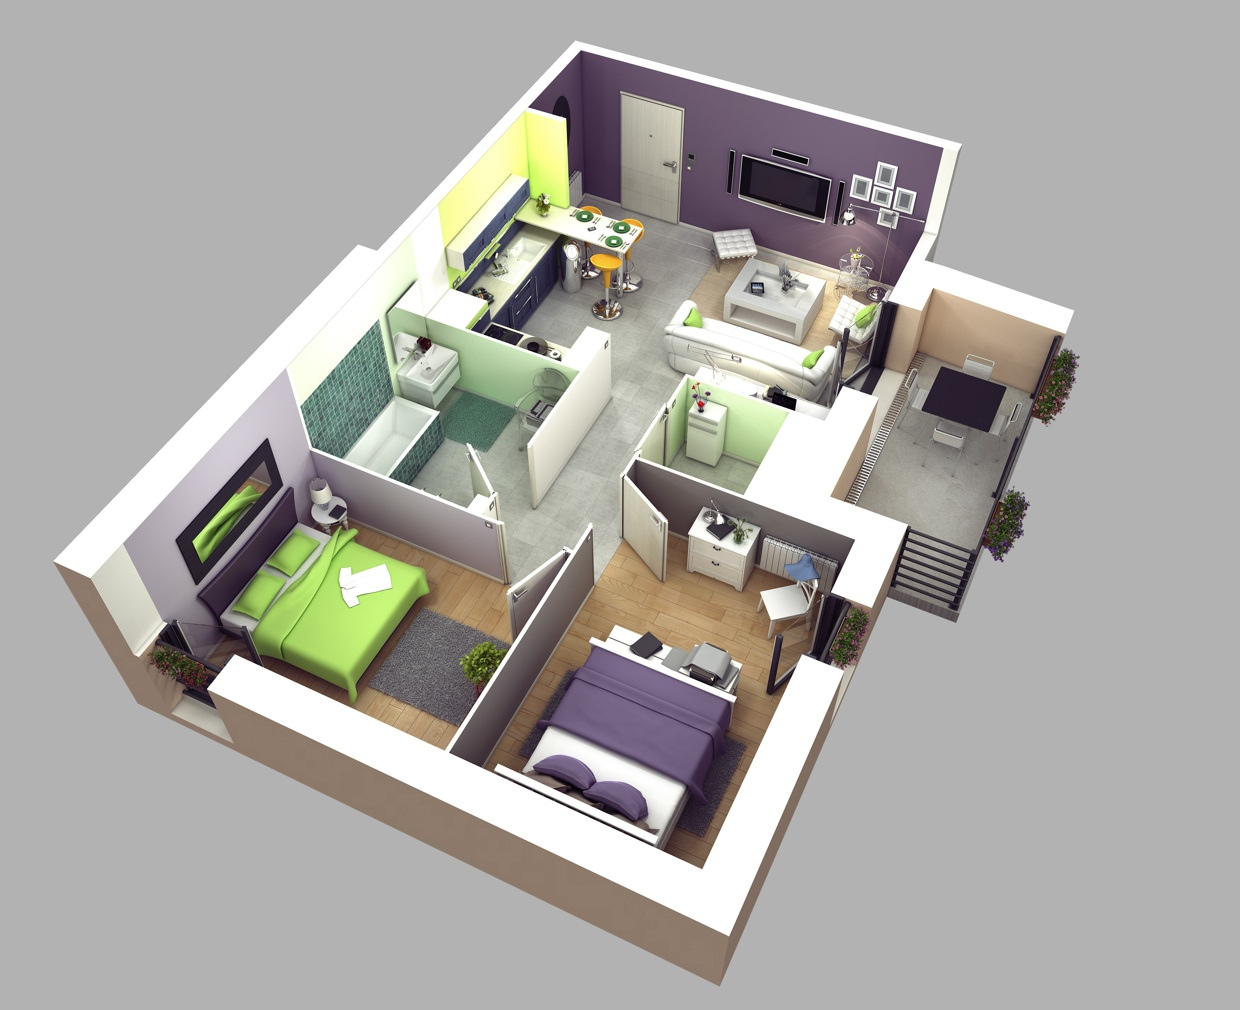 2 bedroom apartmenthouse plans - House Design Plans